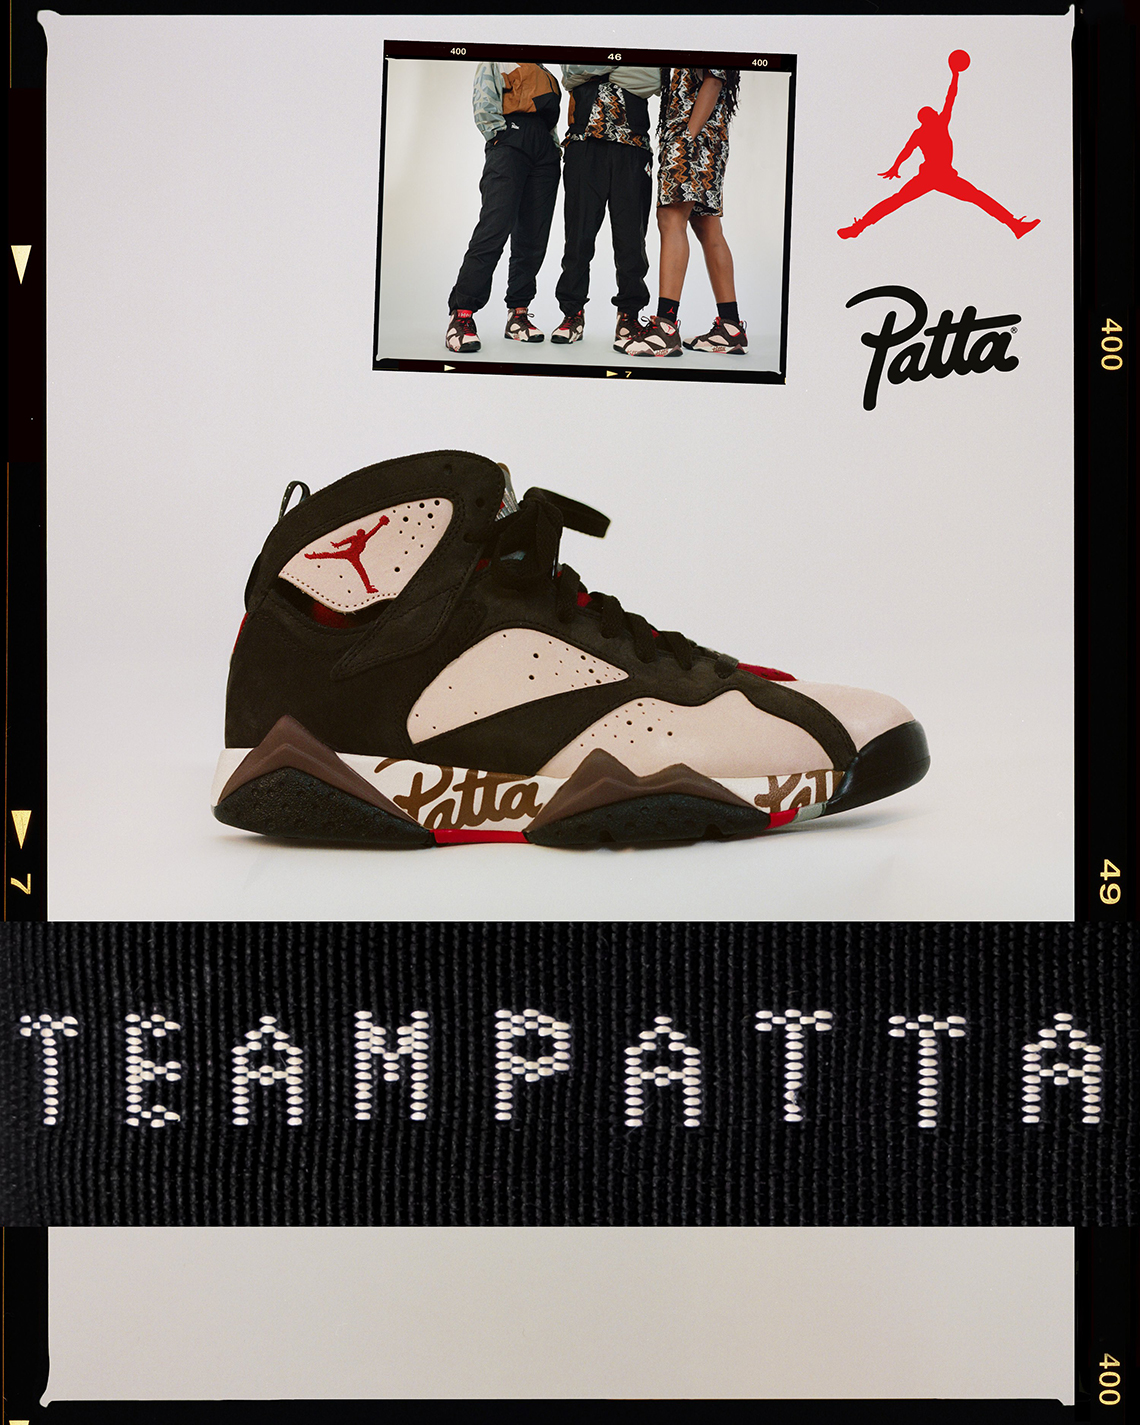 newest collection e0c3b bc70f Patta Air Jordan 7 Collection Release Date + Info   SneakerNews.com